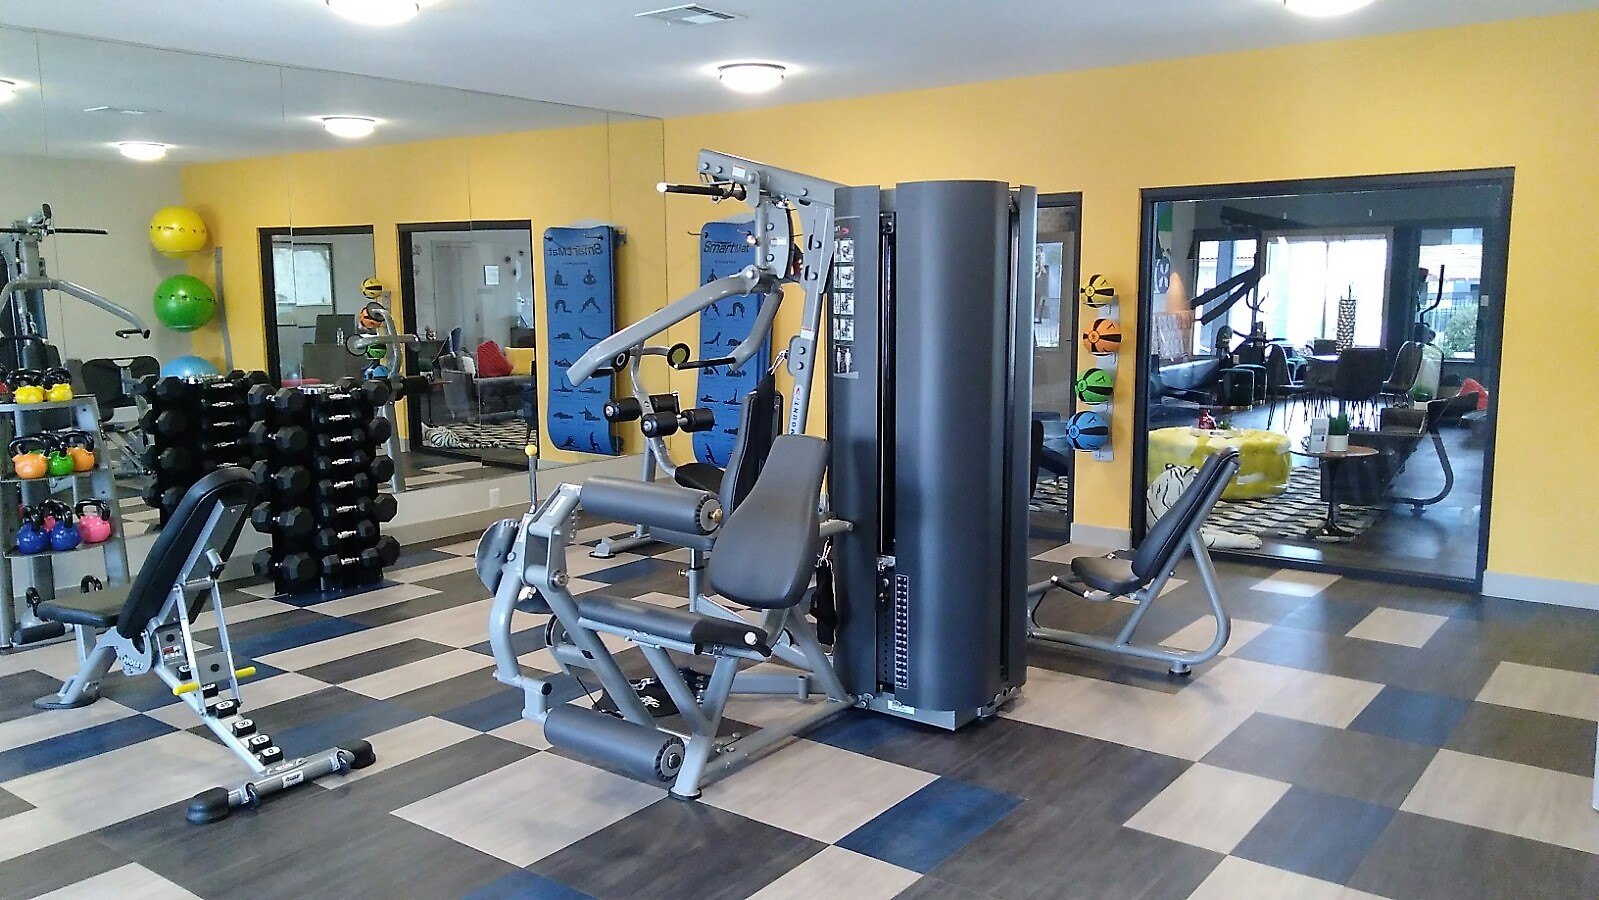 Weight-lifting equipment in fitness center, in Prelude at the Park Apts, NV, 89015